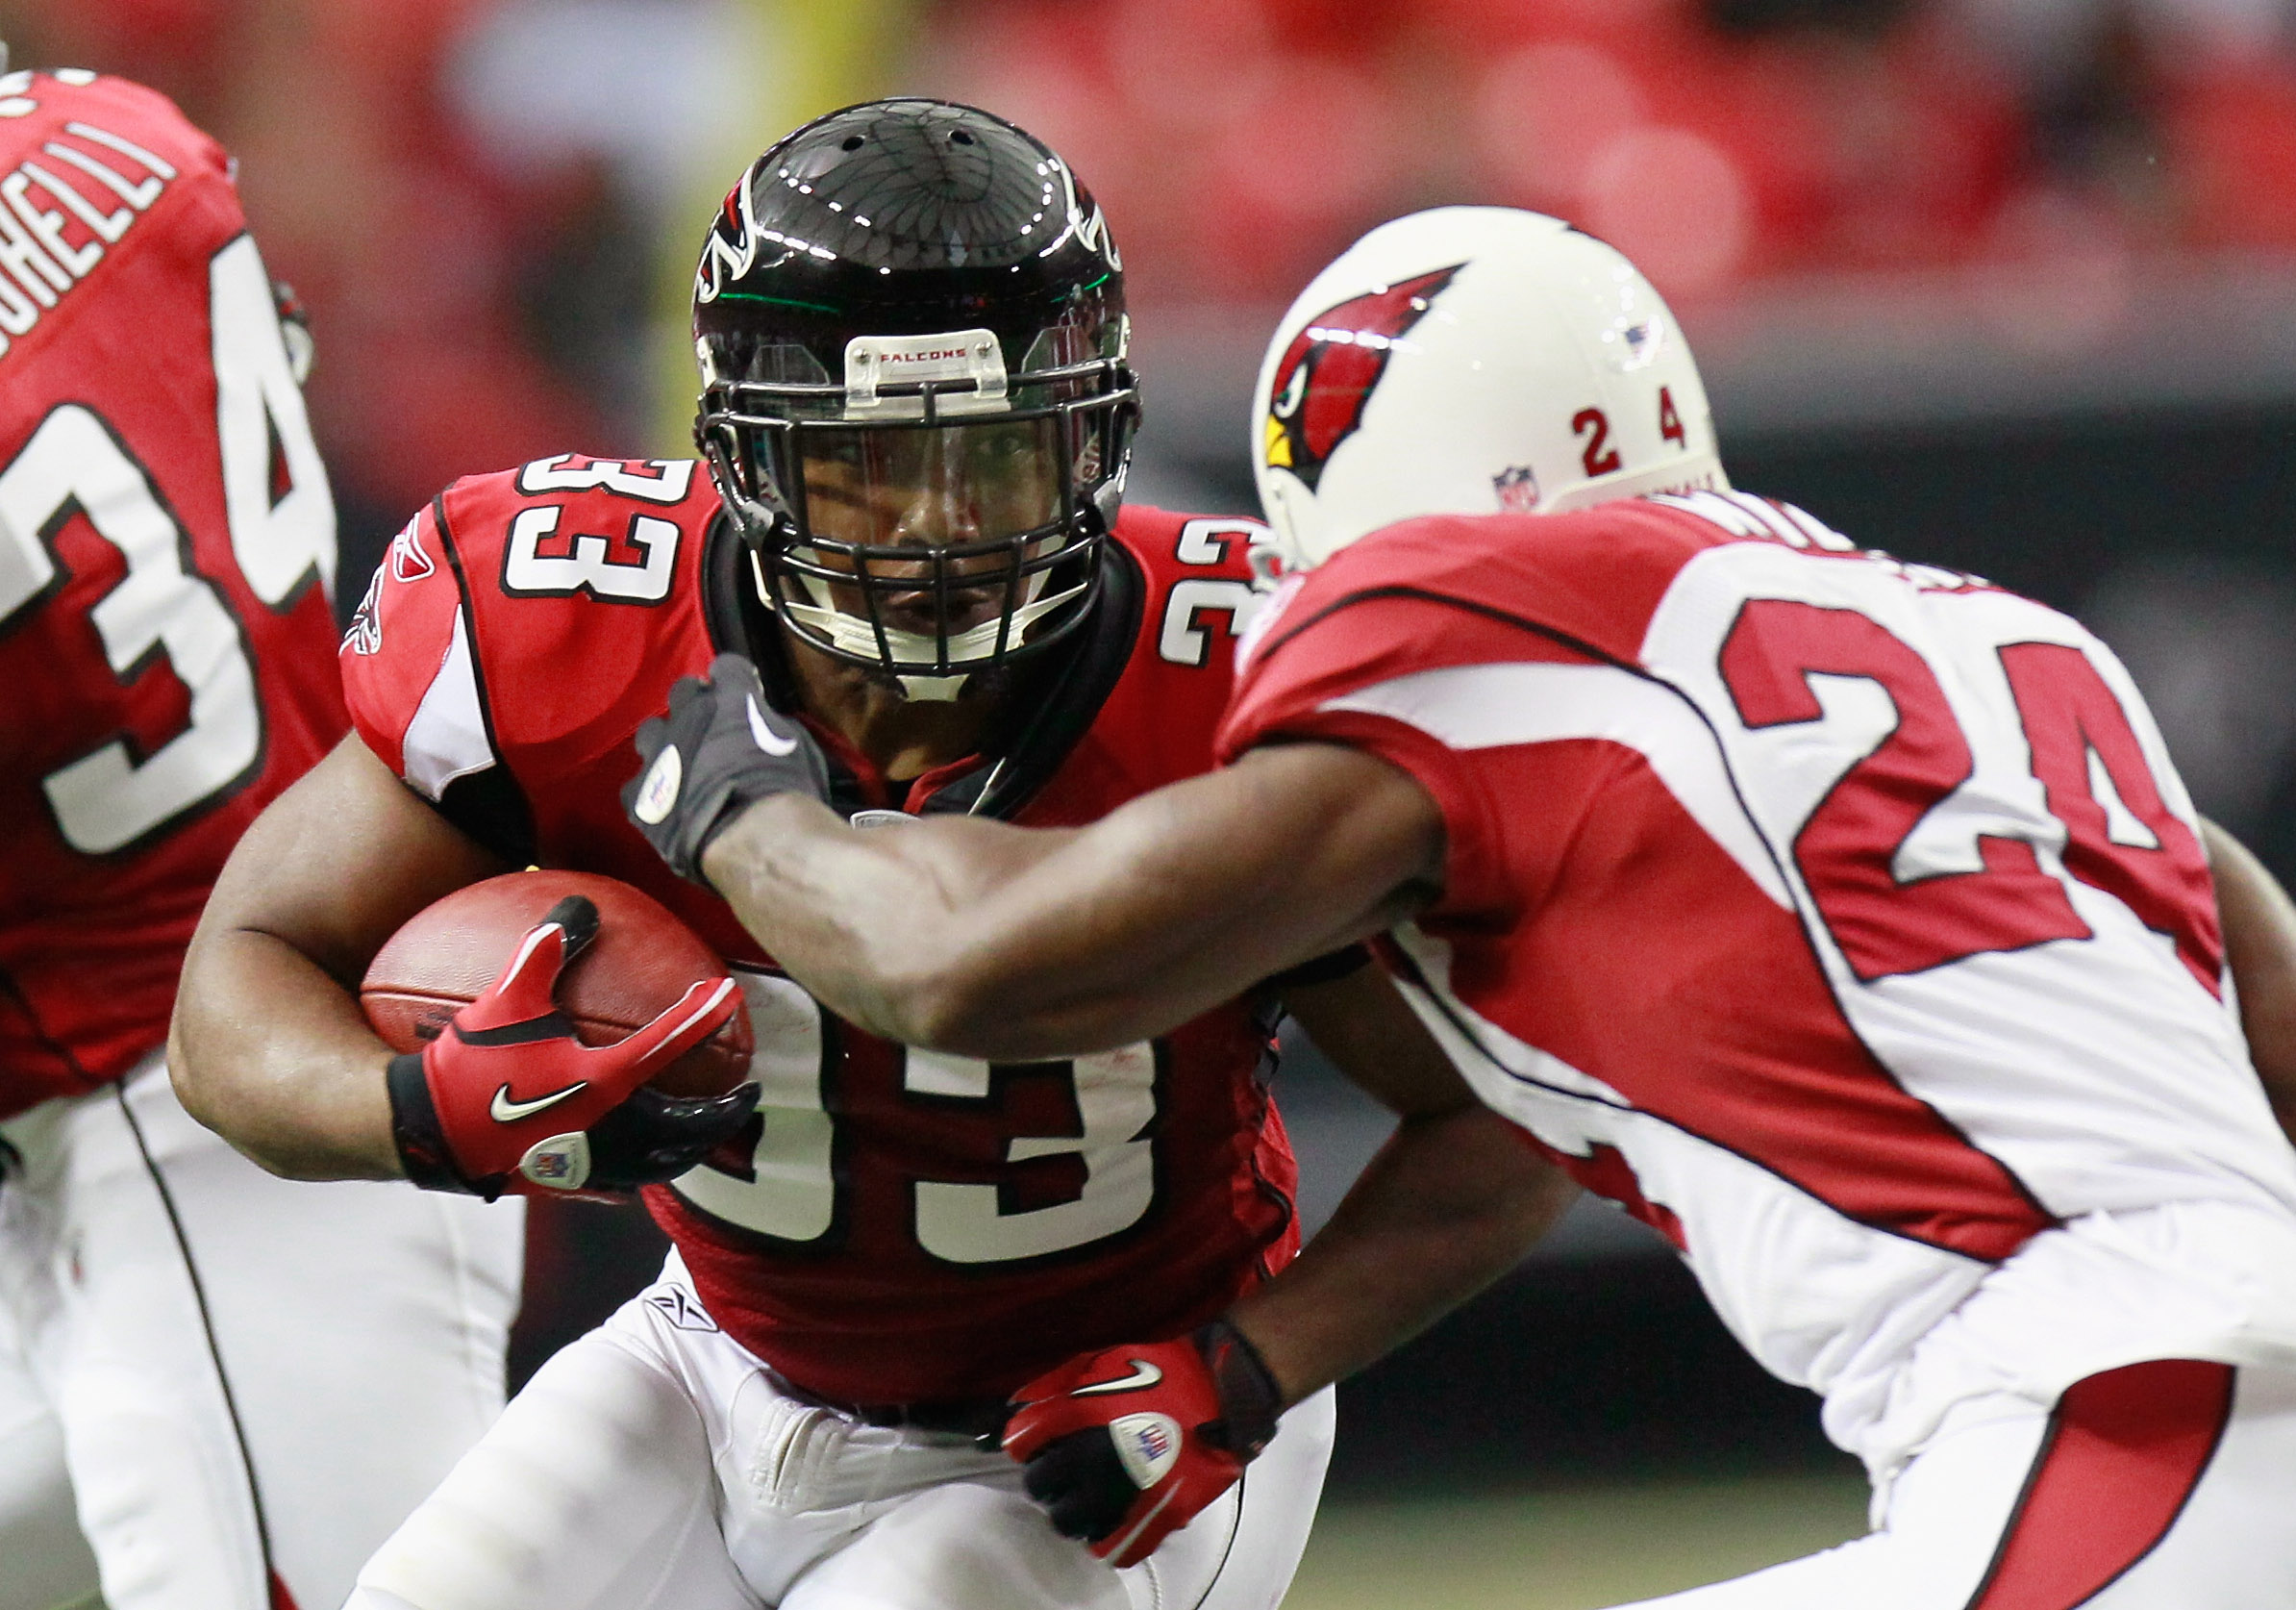 ATLANTA - SEPTEMBER 19:  Michael Turner #33 of the Atlanta Falcons rushes against Adrian Wilson #24 of the Arizona Cardinals at Georgia Dome on September 19, 2010 in Atlanta, Georgia.  (Photo by Kevin C. Cox/Getty Images)